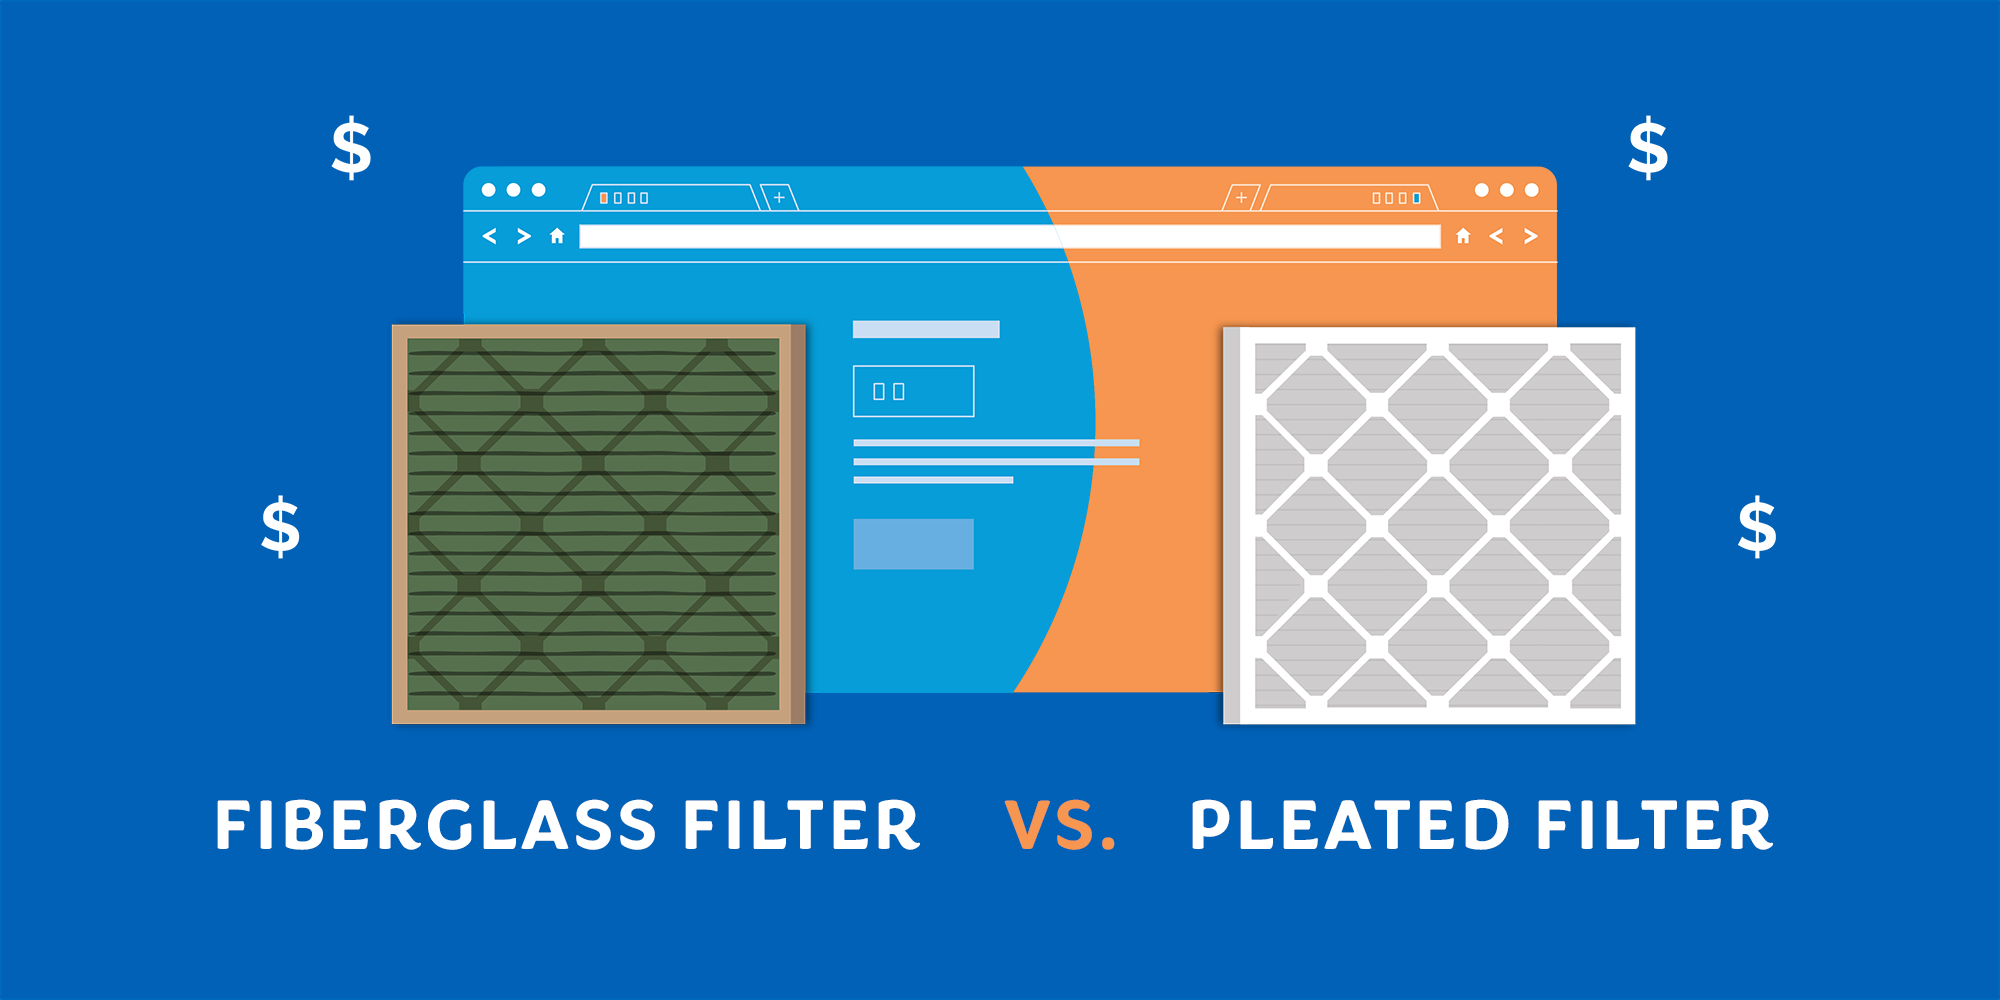 Fiberglass vs Pleated Air Filters Fiberglass filters are